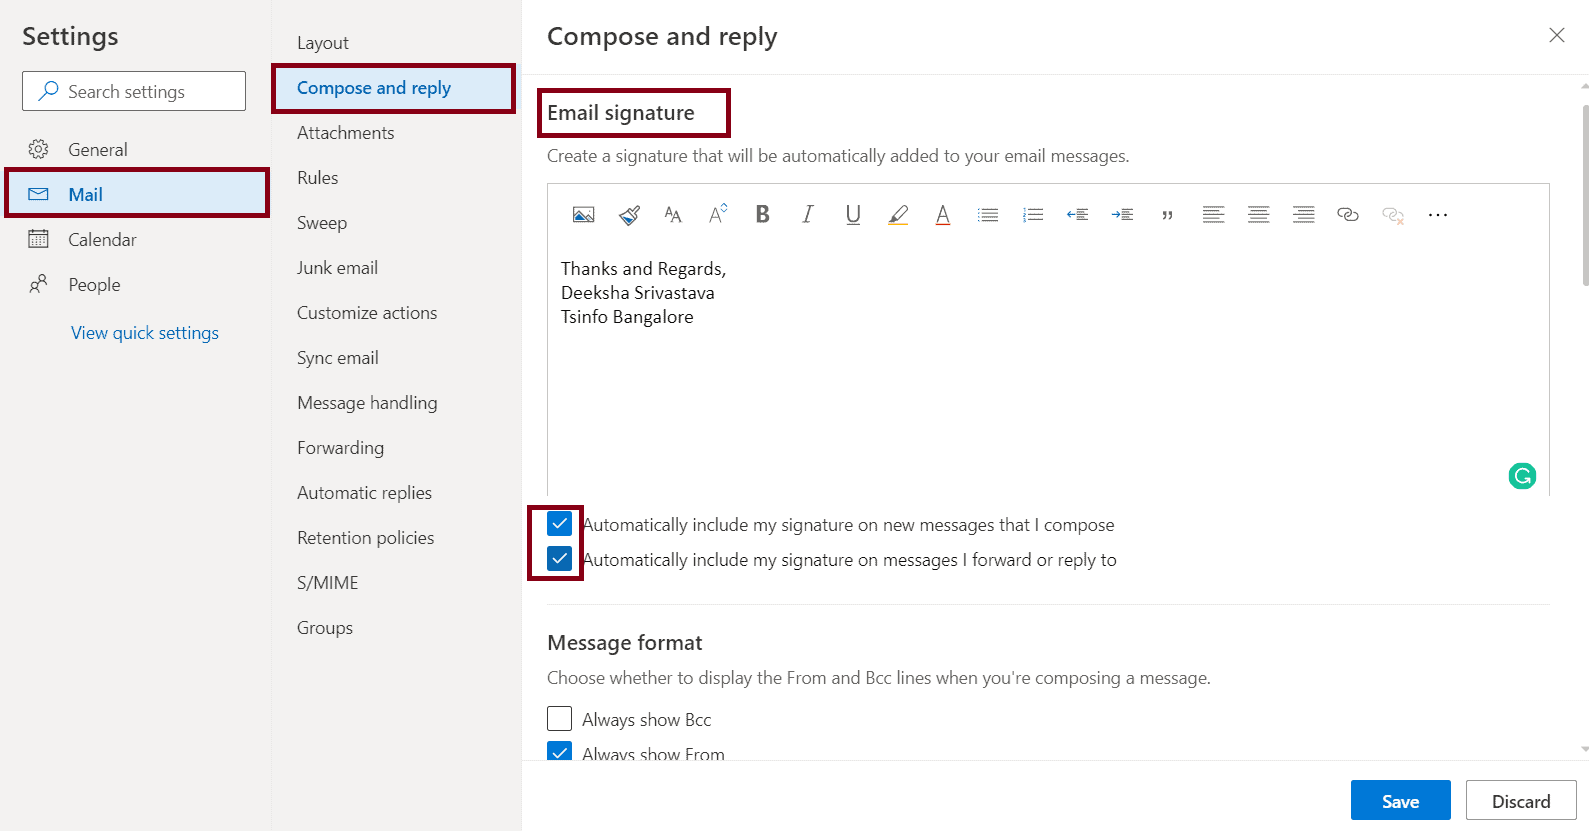 How to add signature in outlook